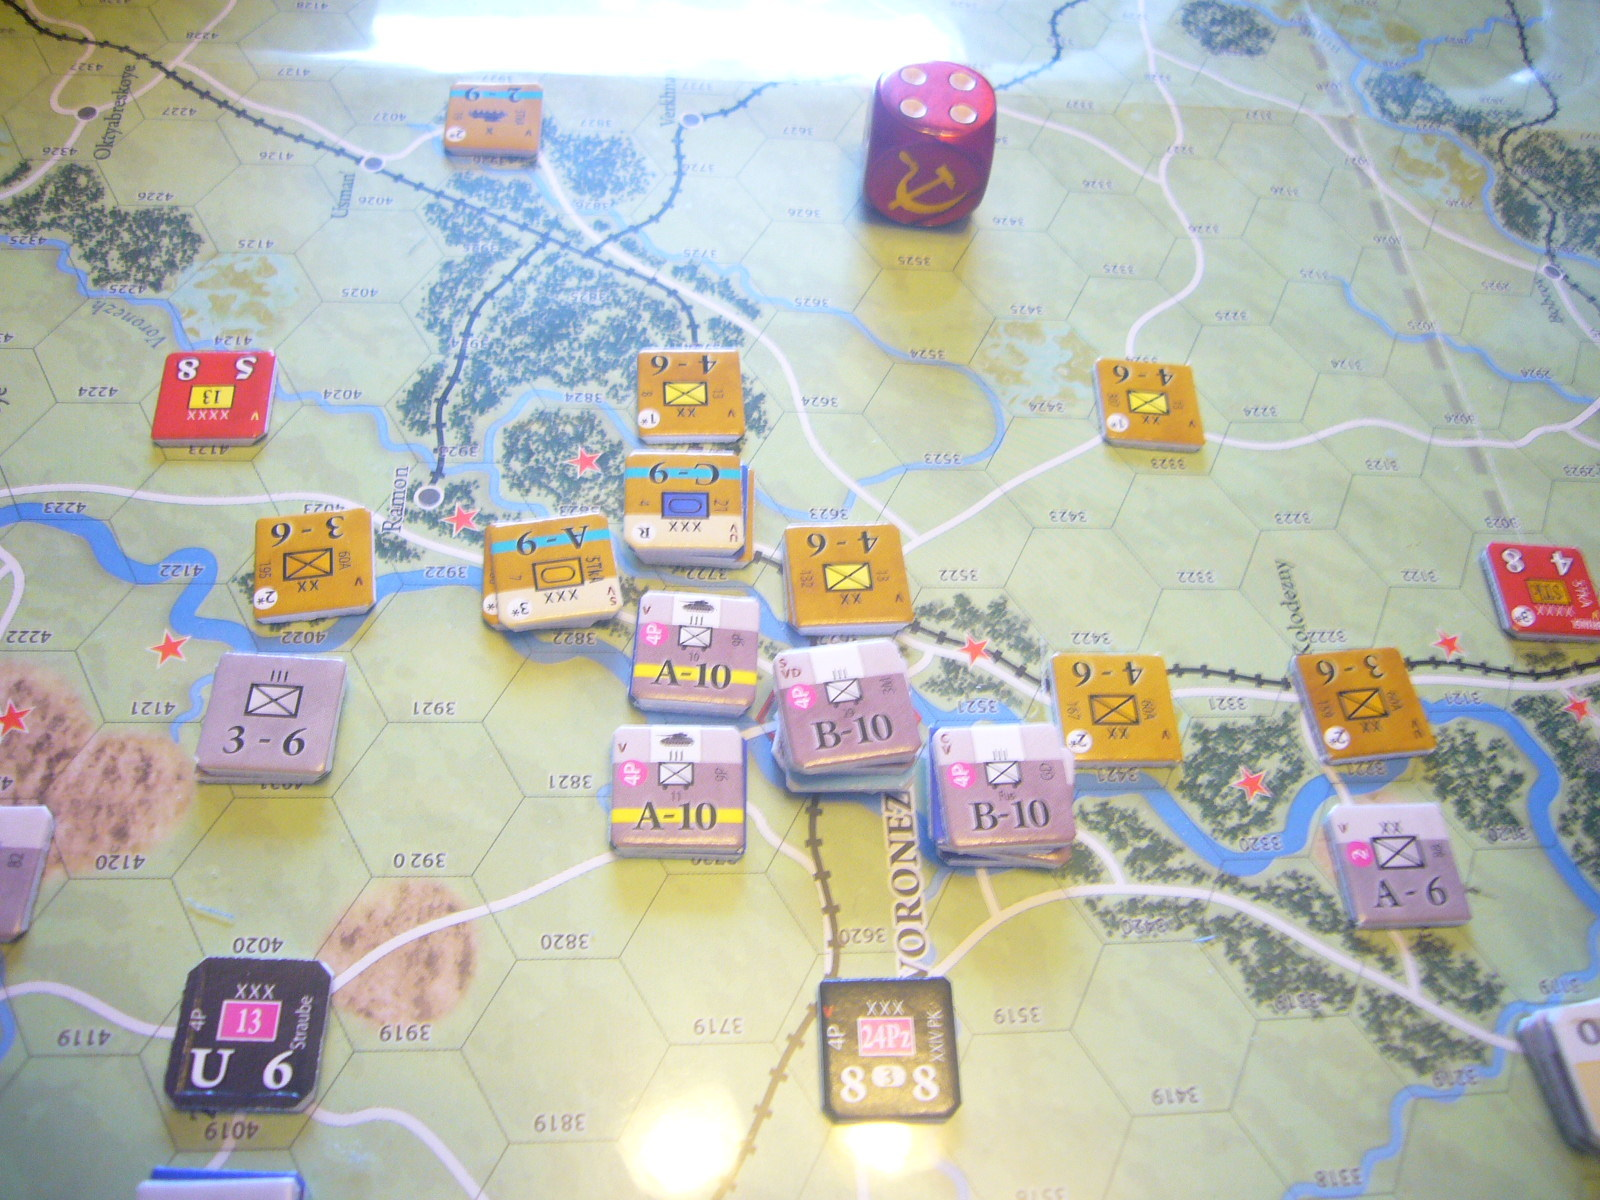 (Compass)FALL BLAU: Army Group South, June to December 1942 青作戦:史実の7月キャンペーンお試し5人戦➌_b0173672_19555826.jpg